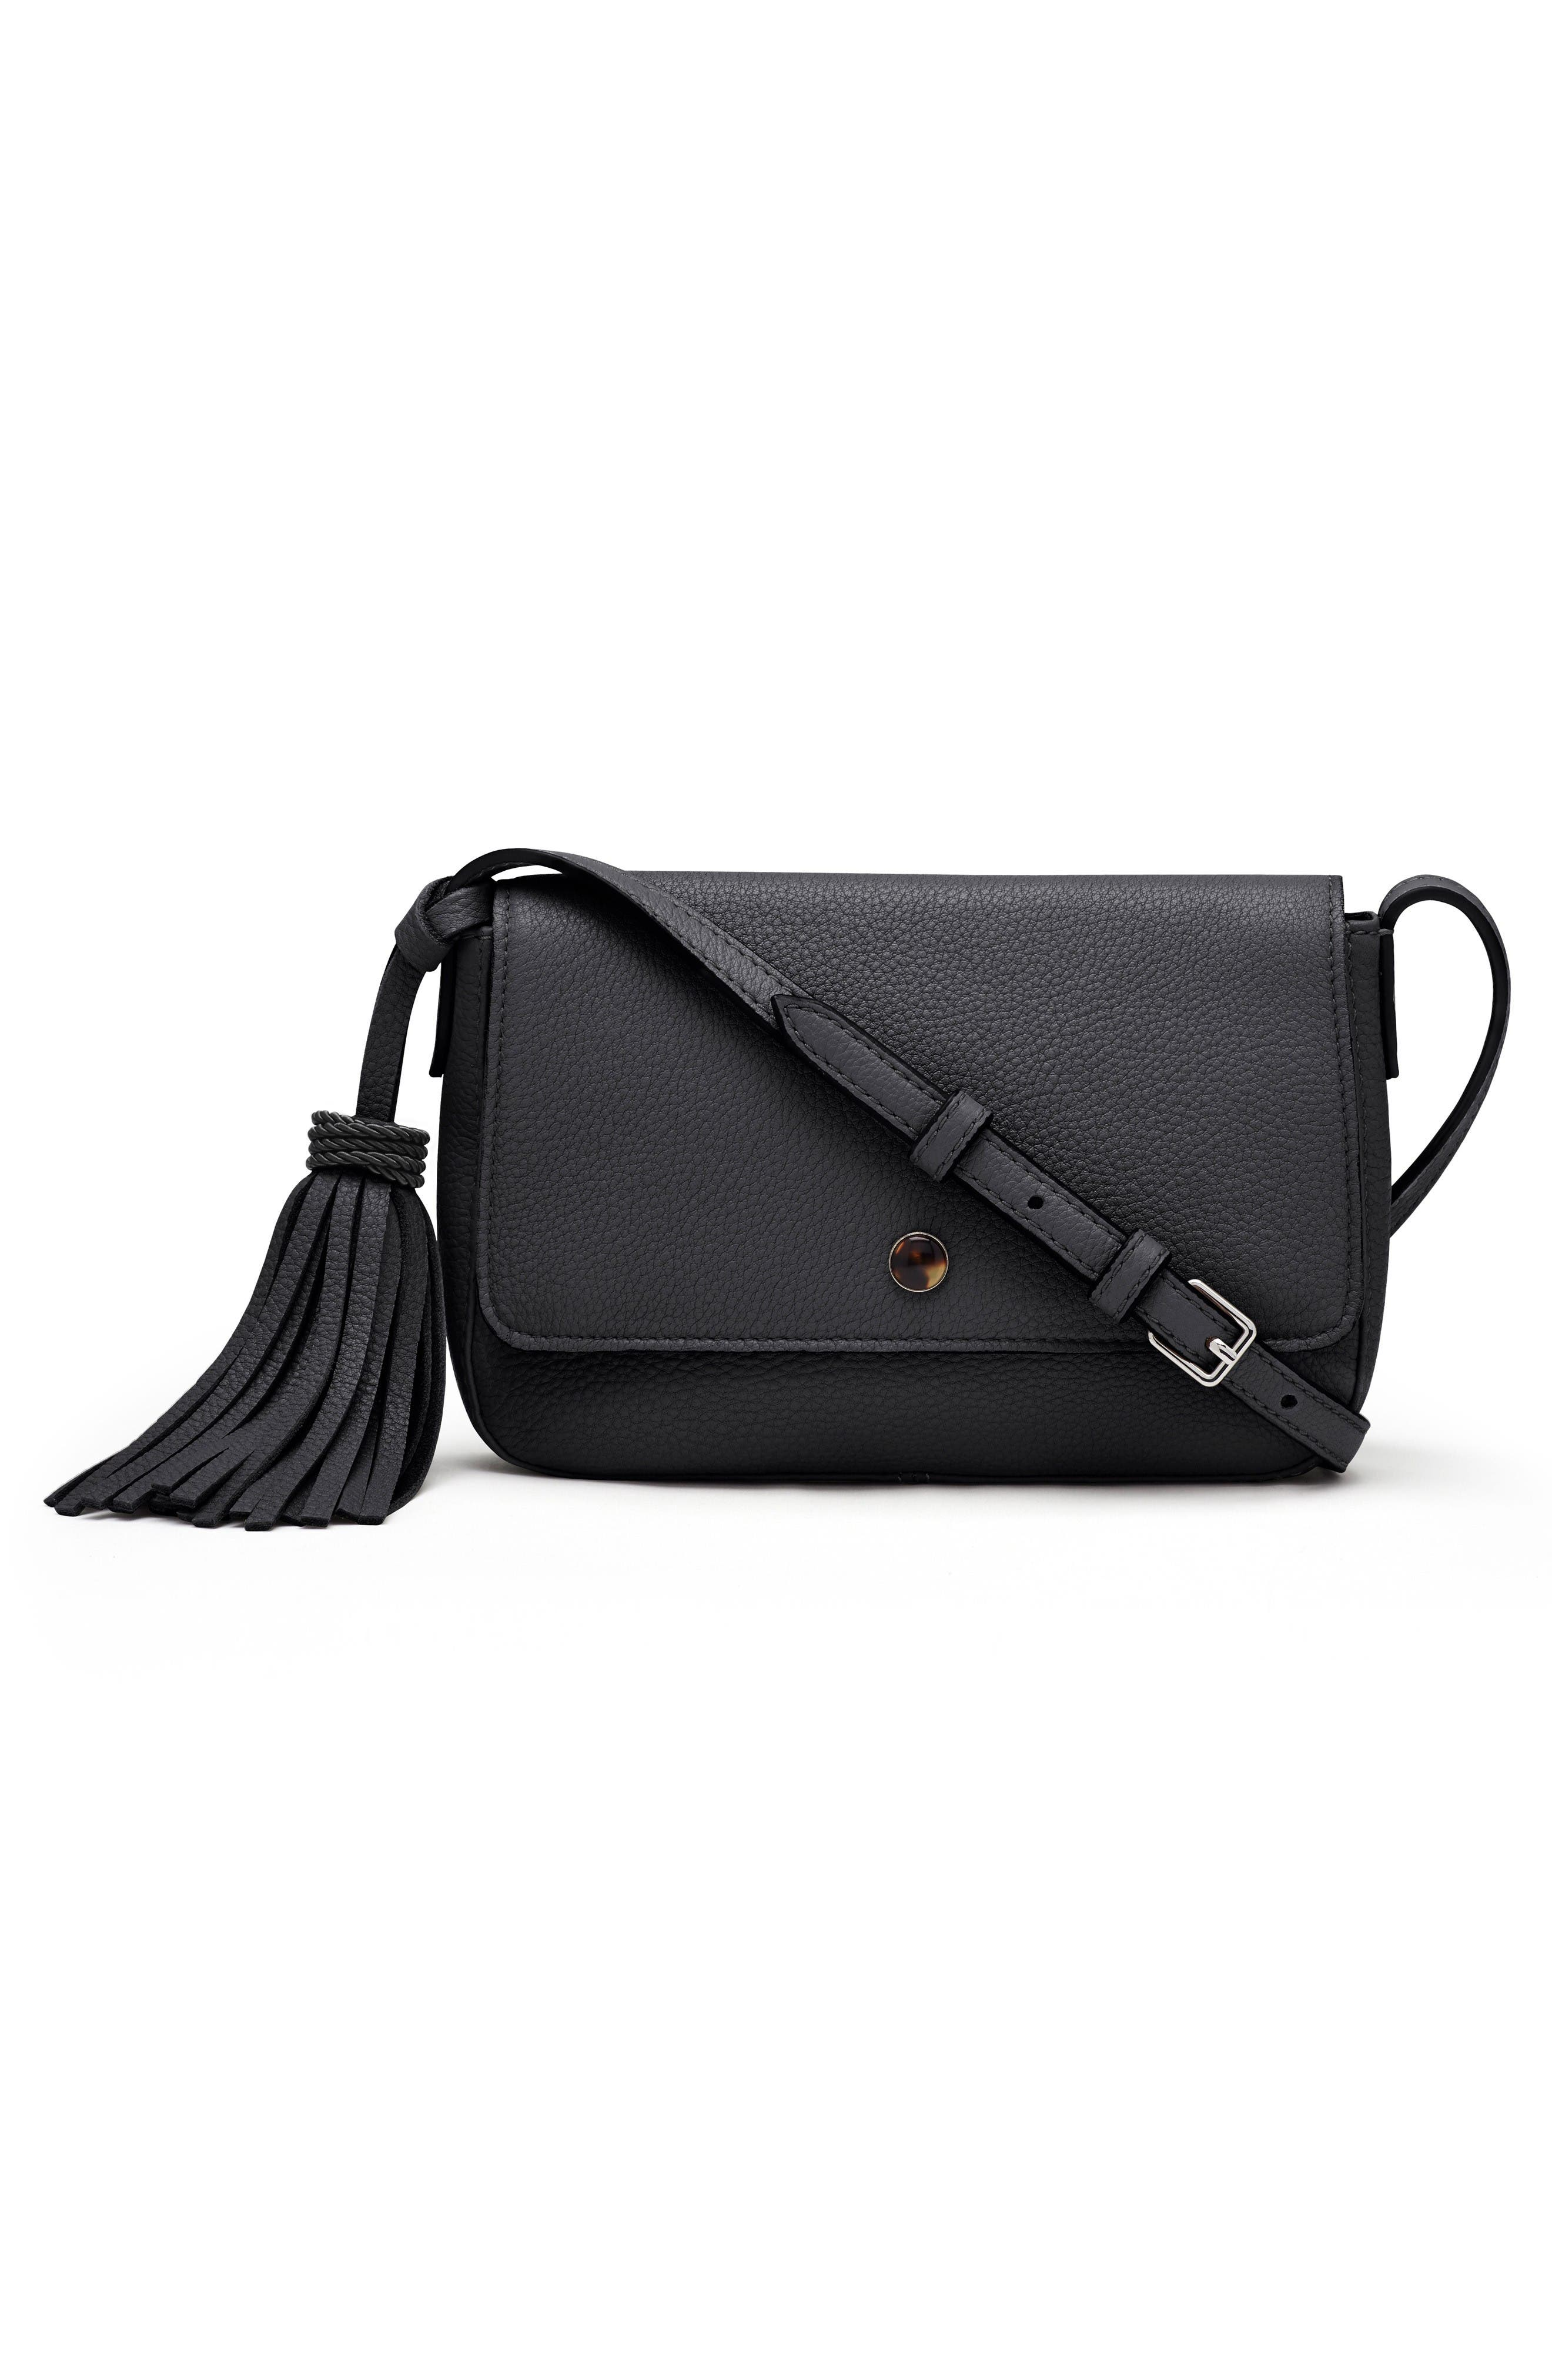 Elizabeth and James Micro Cynnie Leather Crossbody Bag